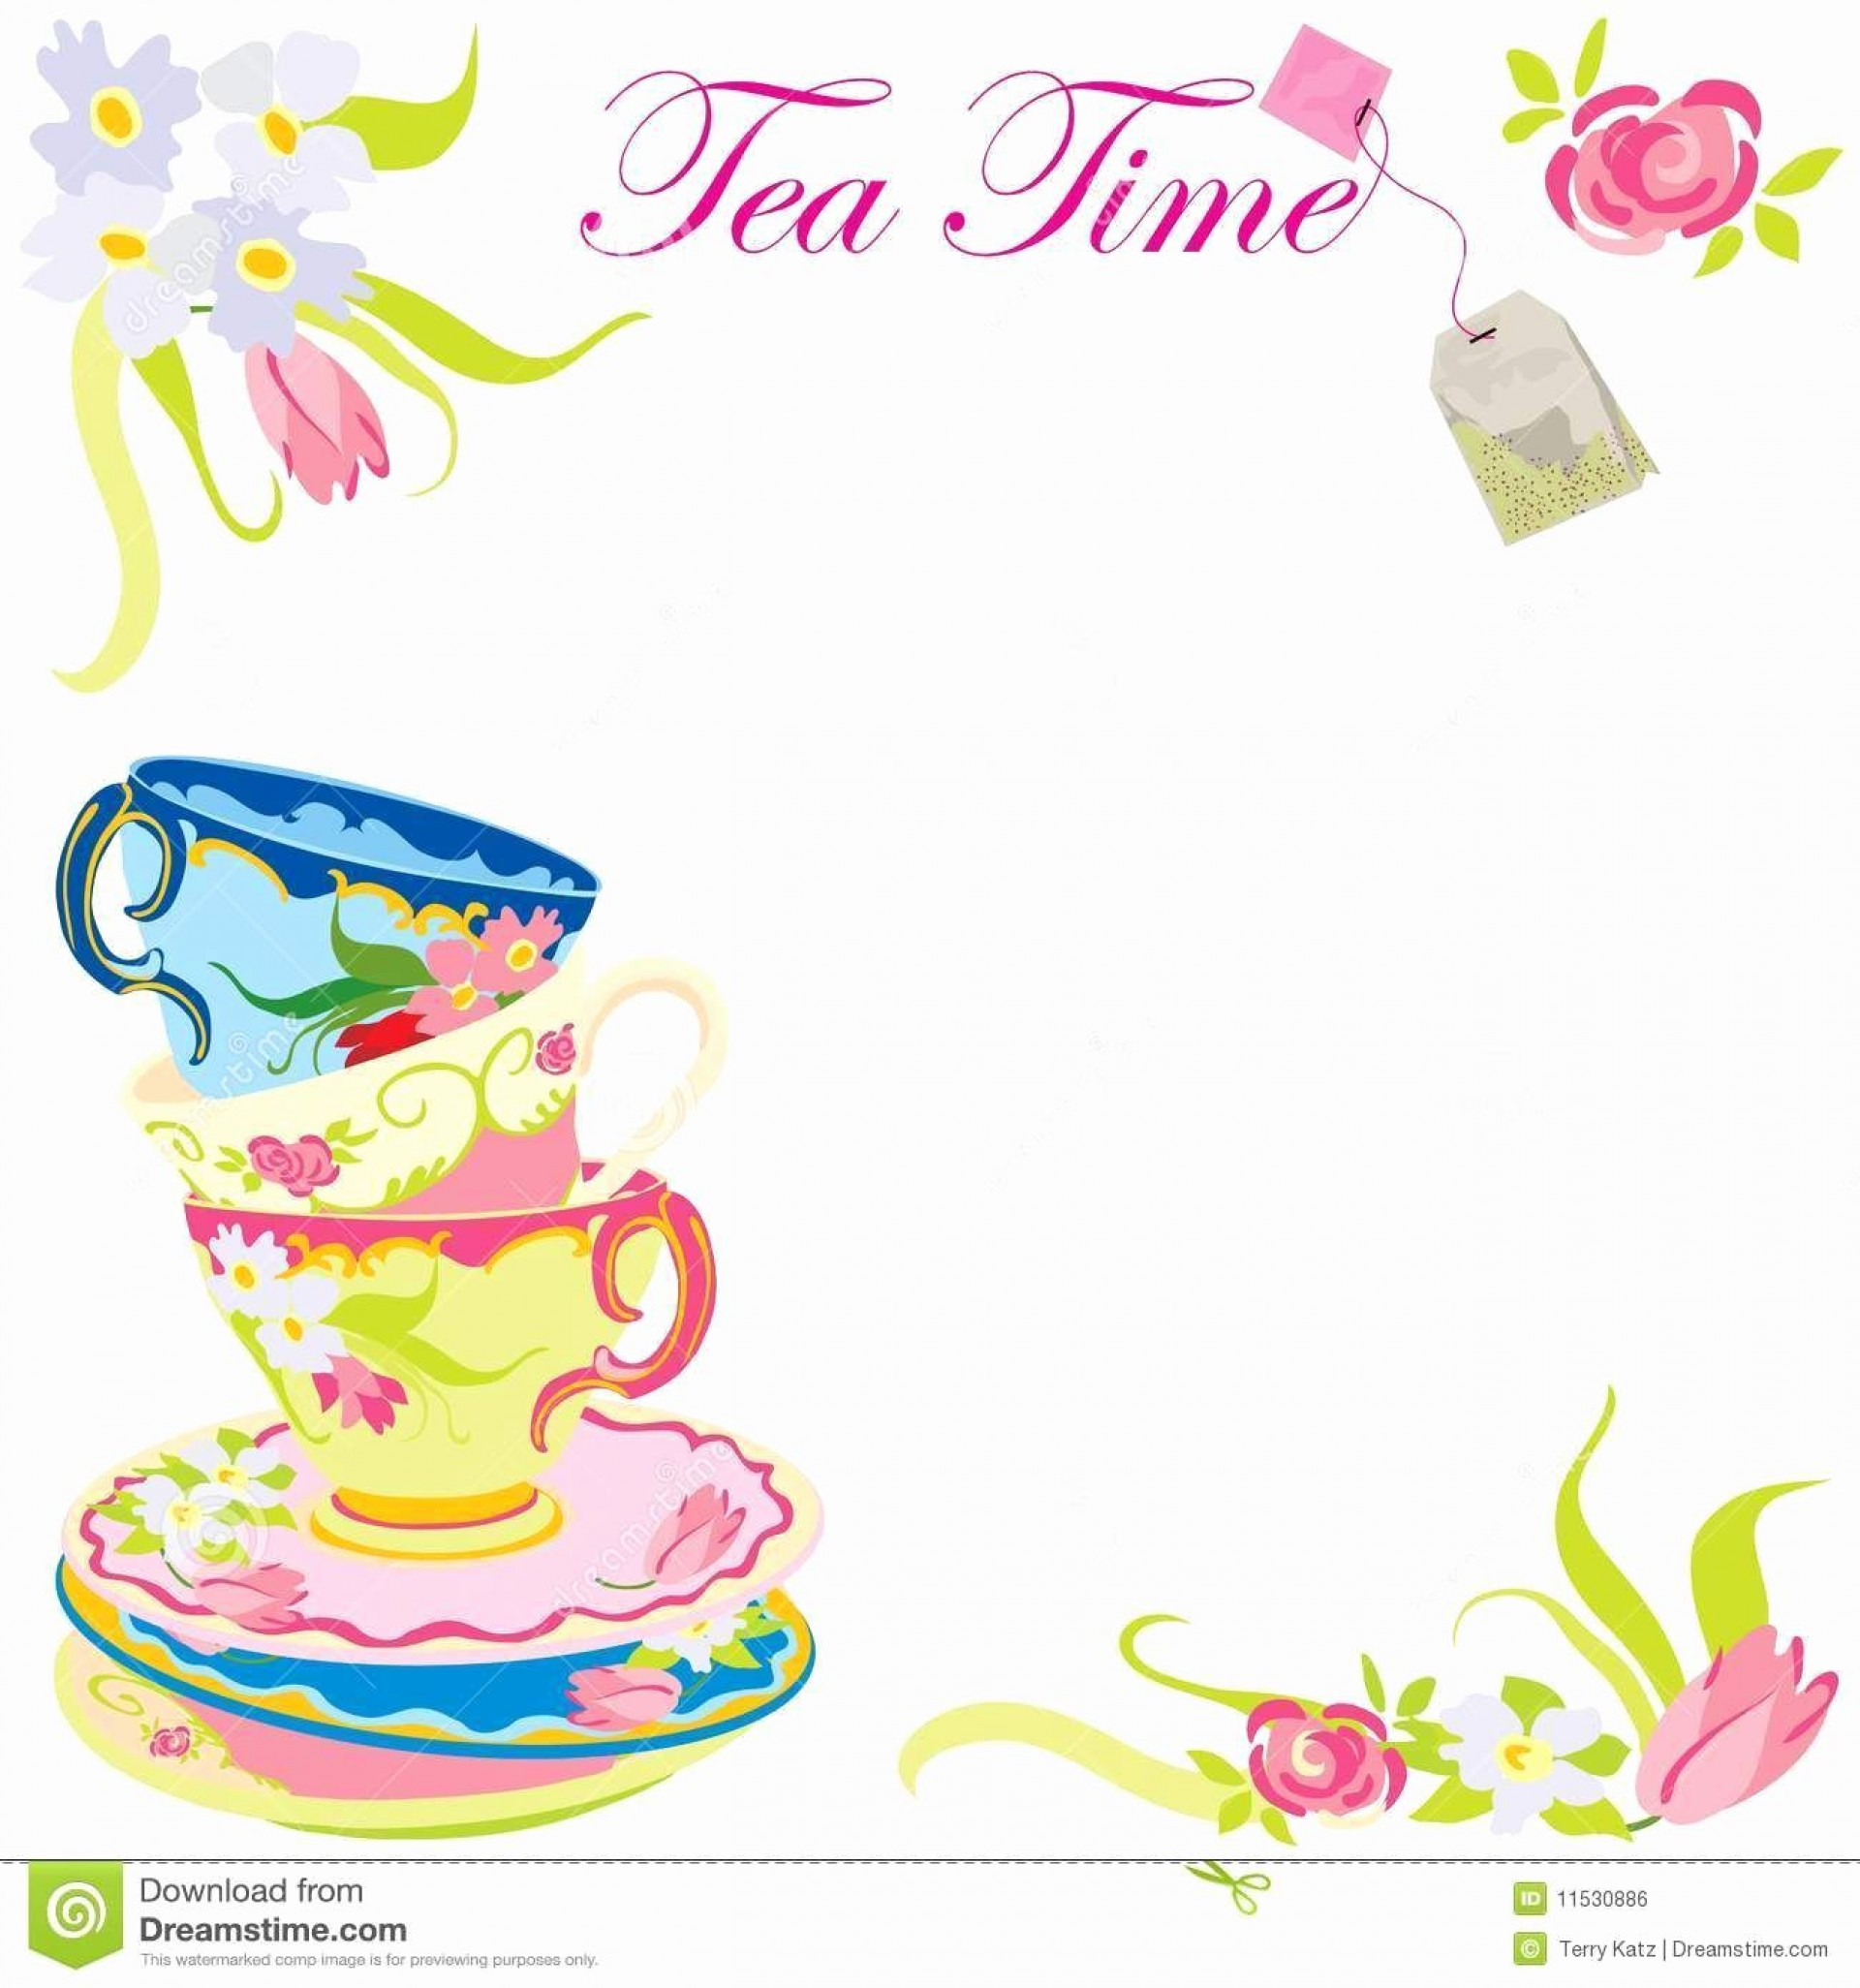 010 Fascinating Tea Party Invitation Template Image  Templates High Free Download Bridal Shower1920